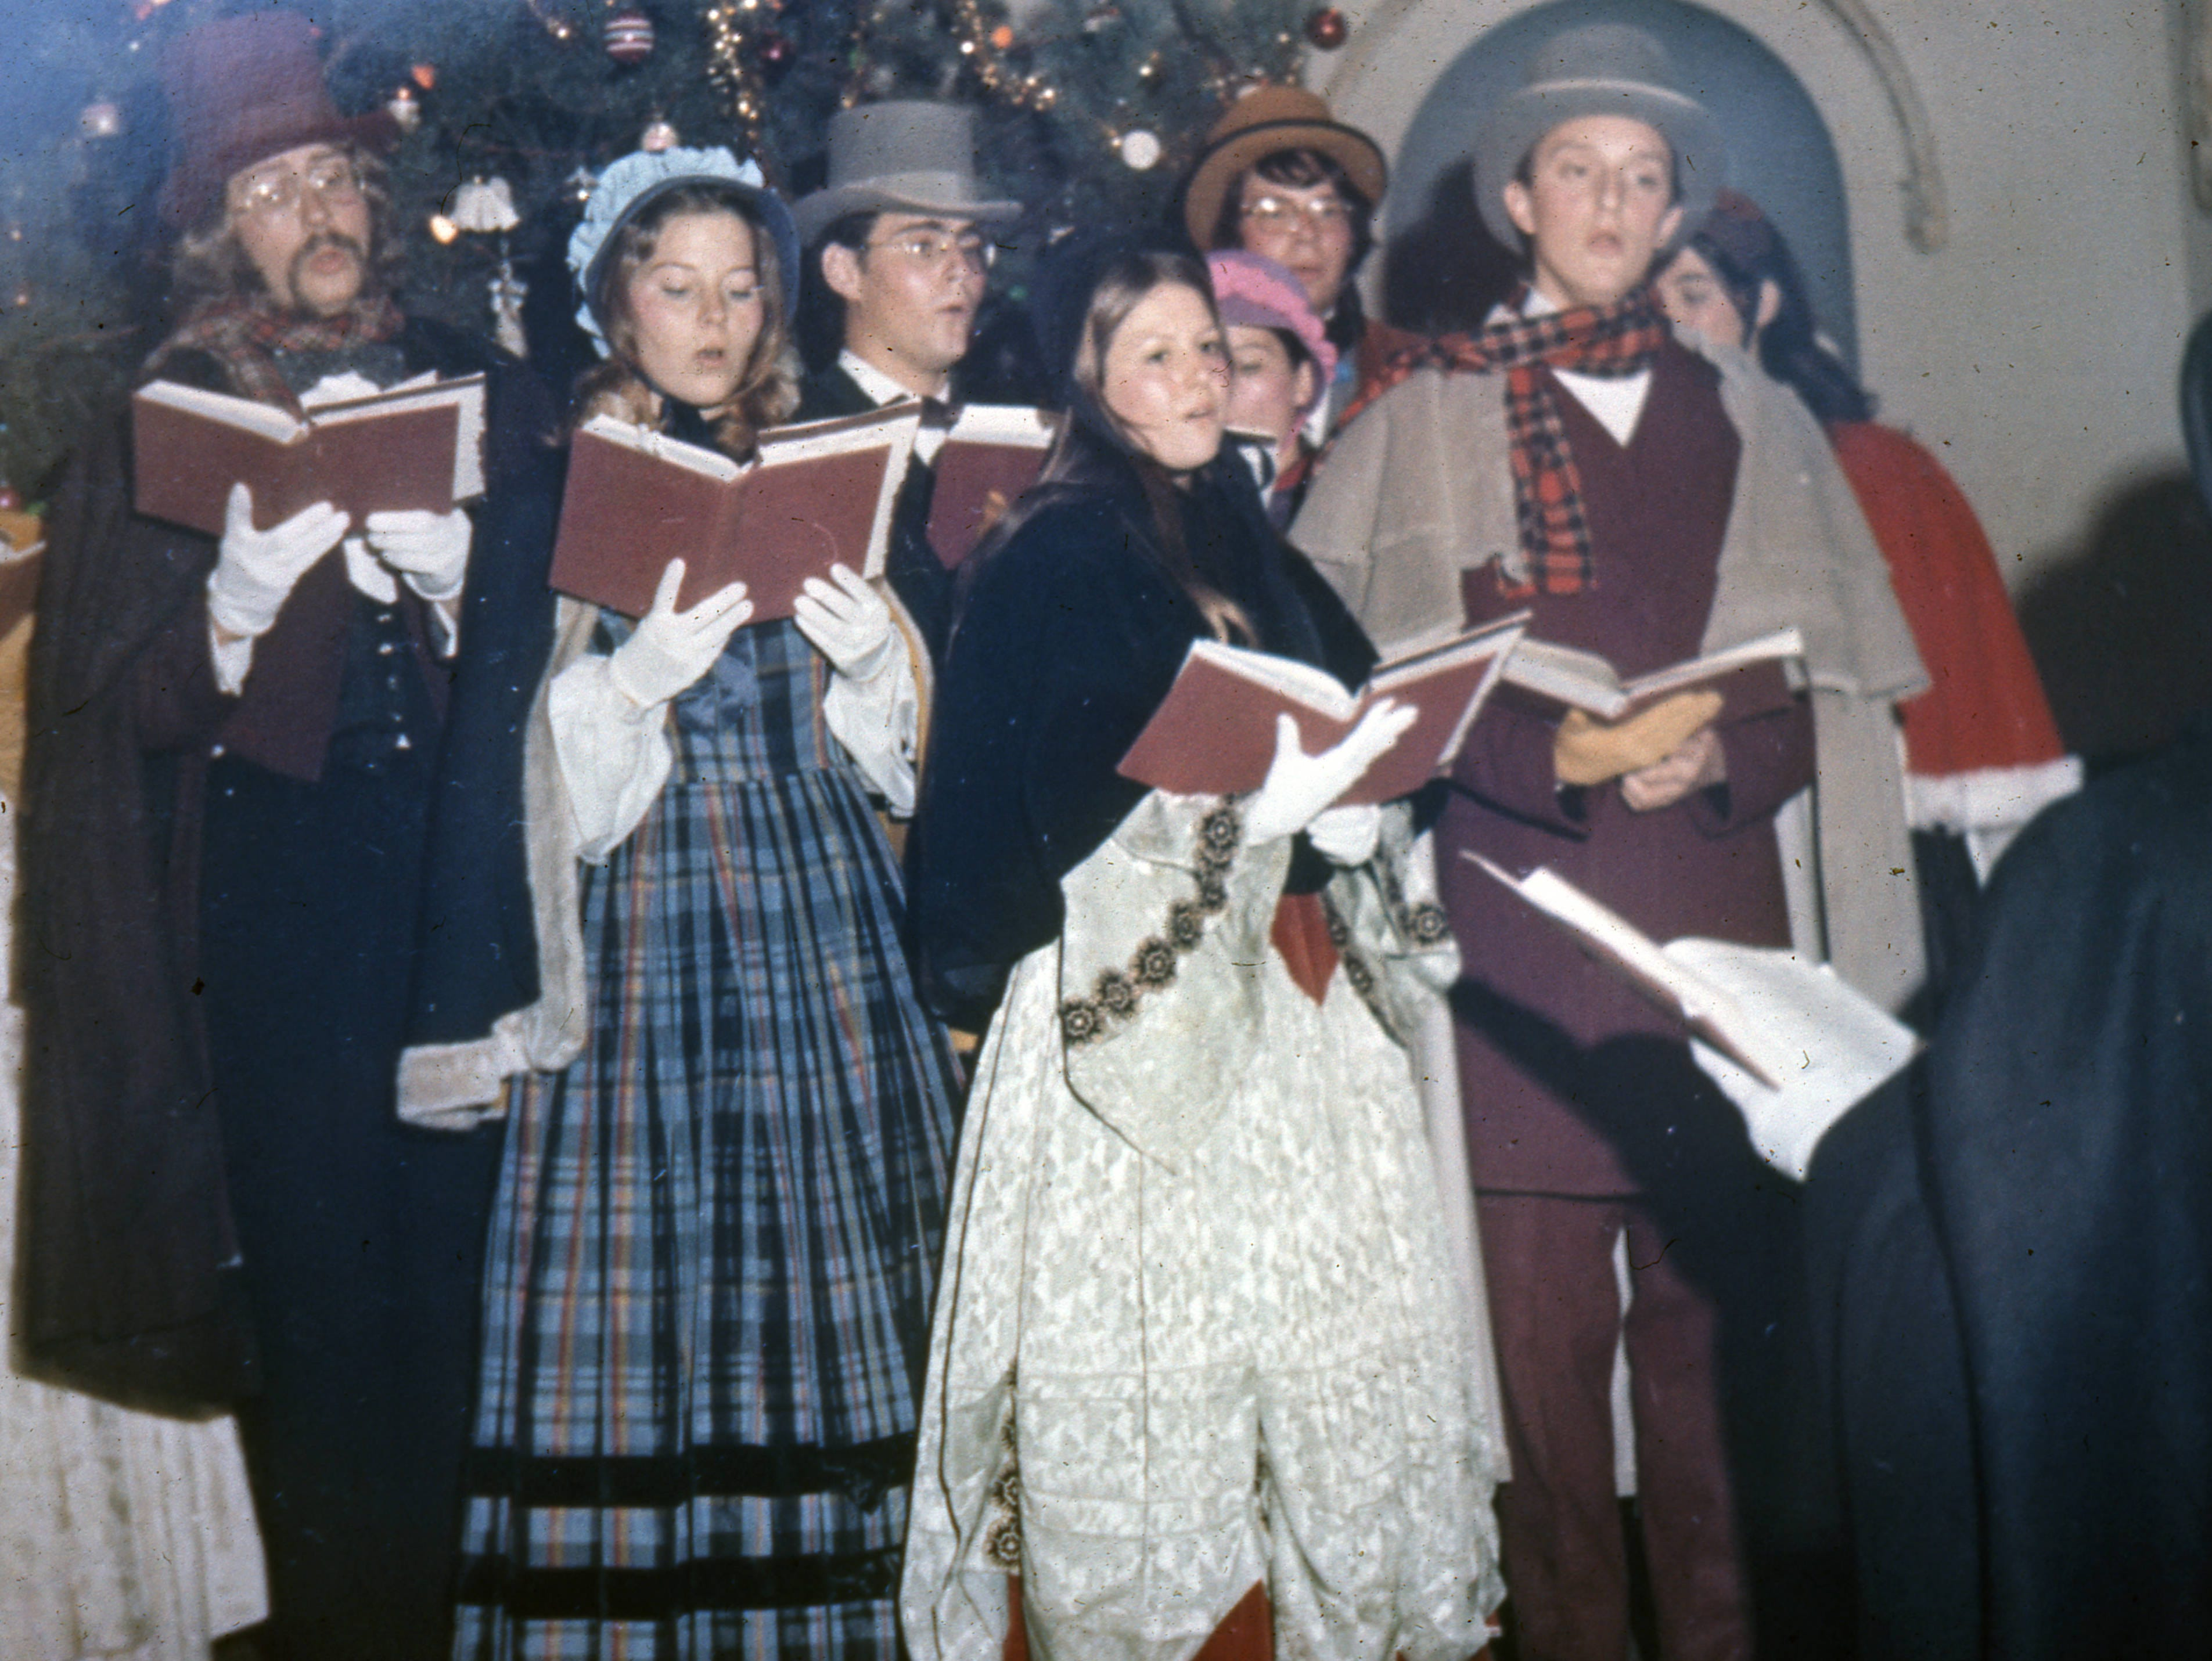 Christmas caroling at the Vanderburgh County courthouse